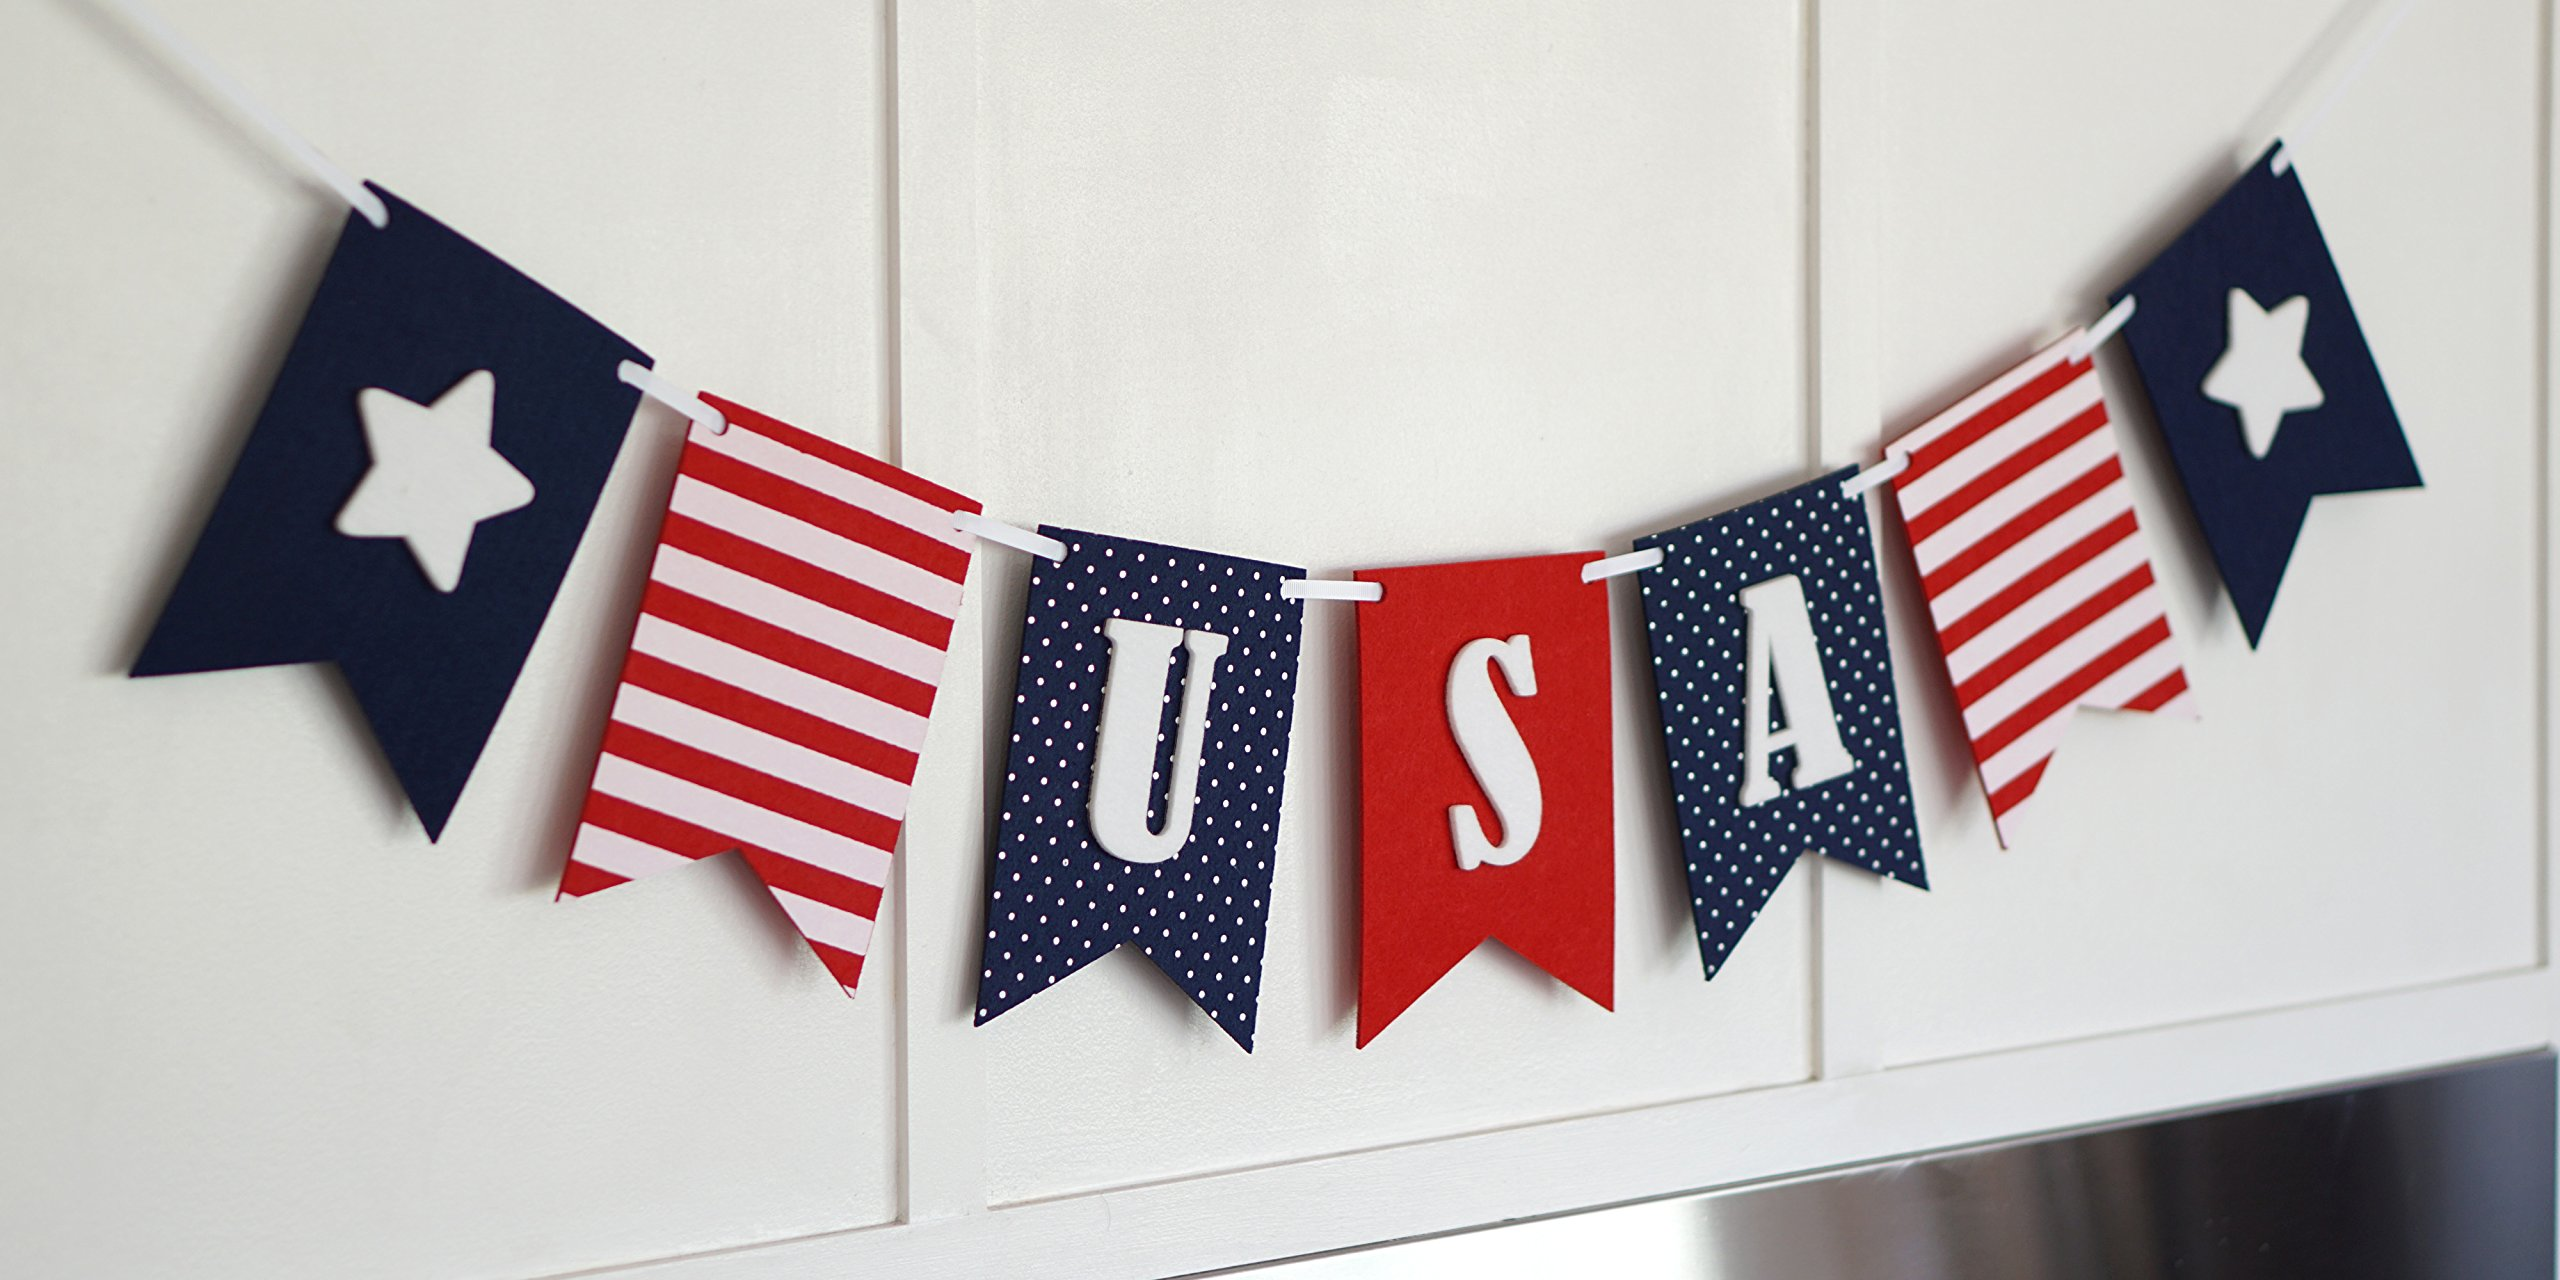 USA Banner Bunting Laser Cut Felt 40 inches wide - Patriotic Americana Red, White, & Blue America! by Decomod (Image #5)